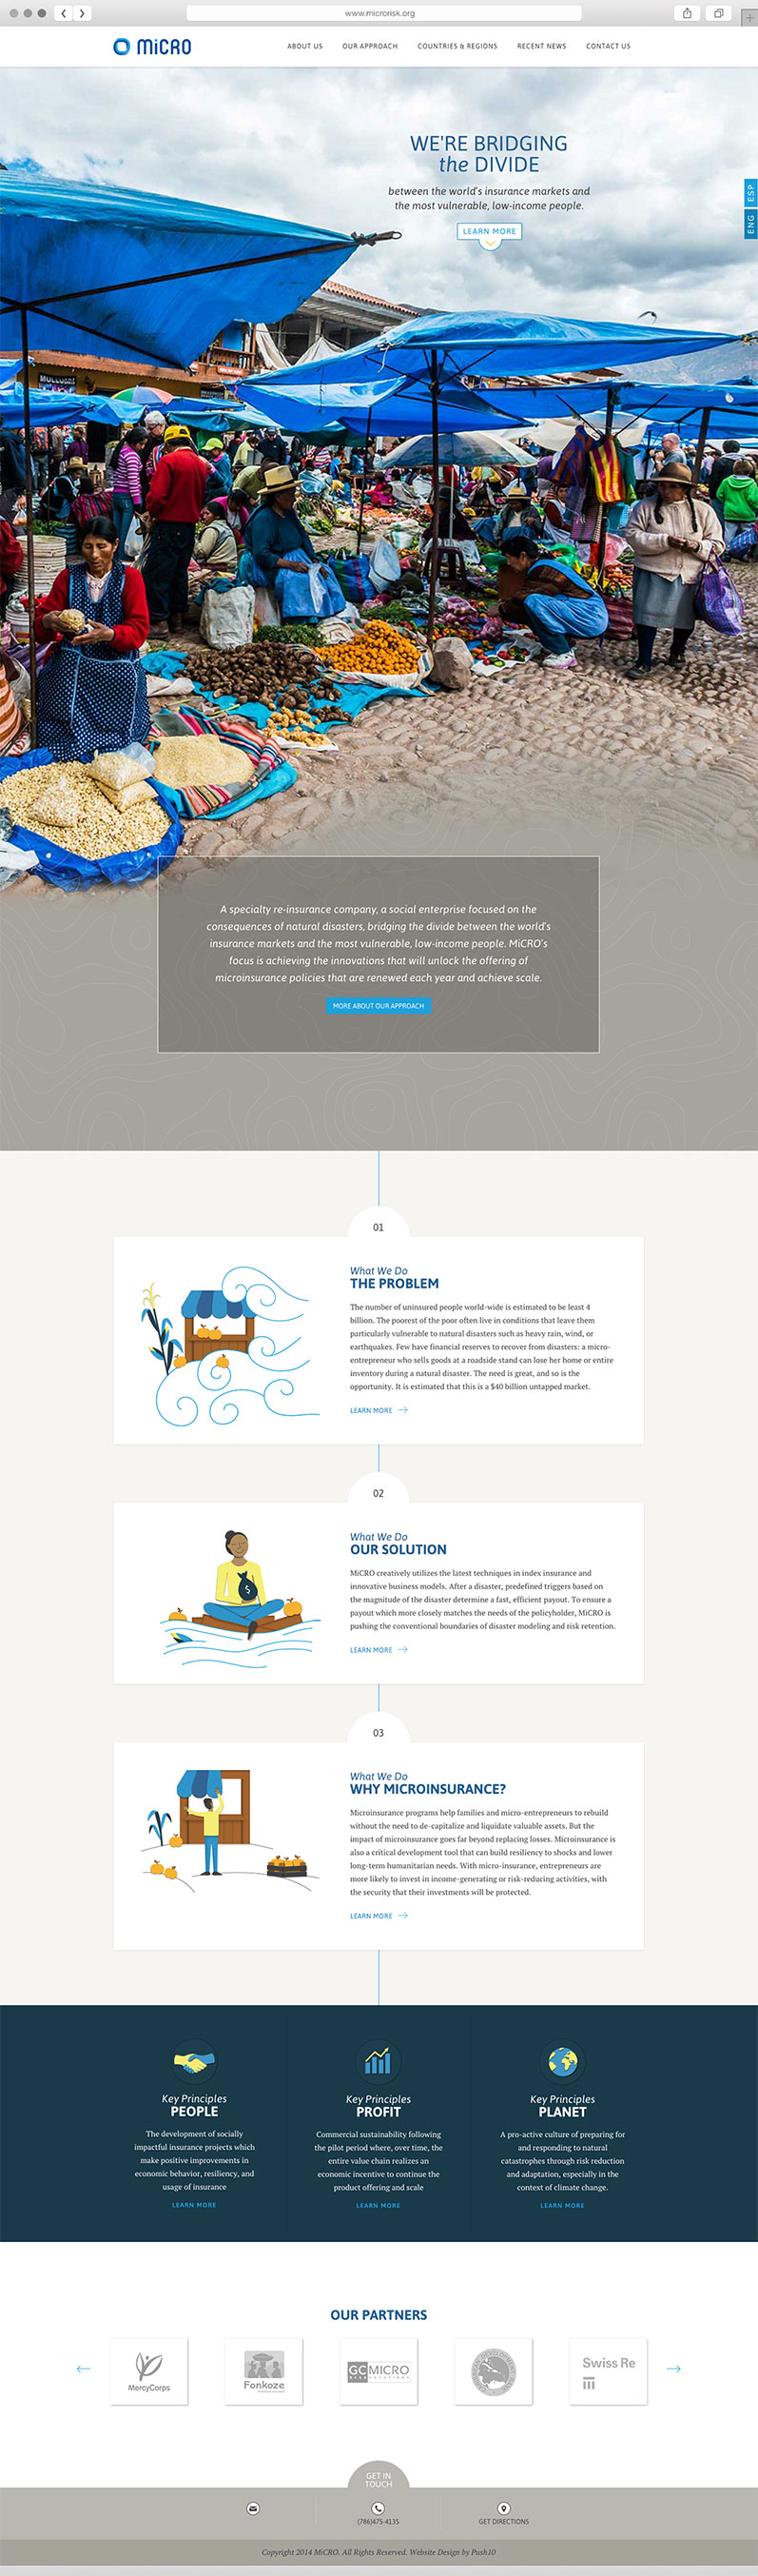 Responsive website interface design for Philadelphia insurance company